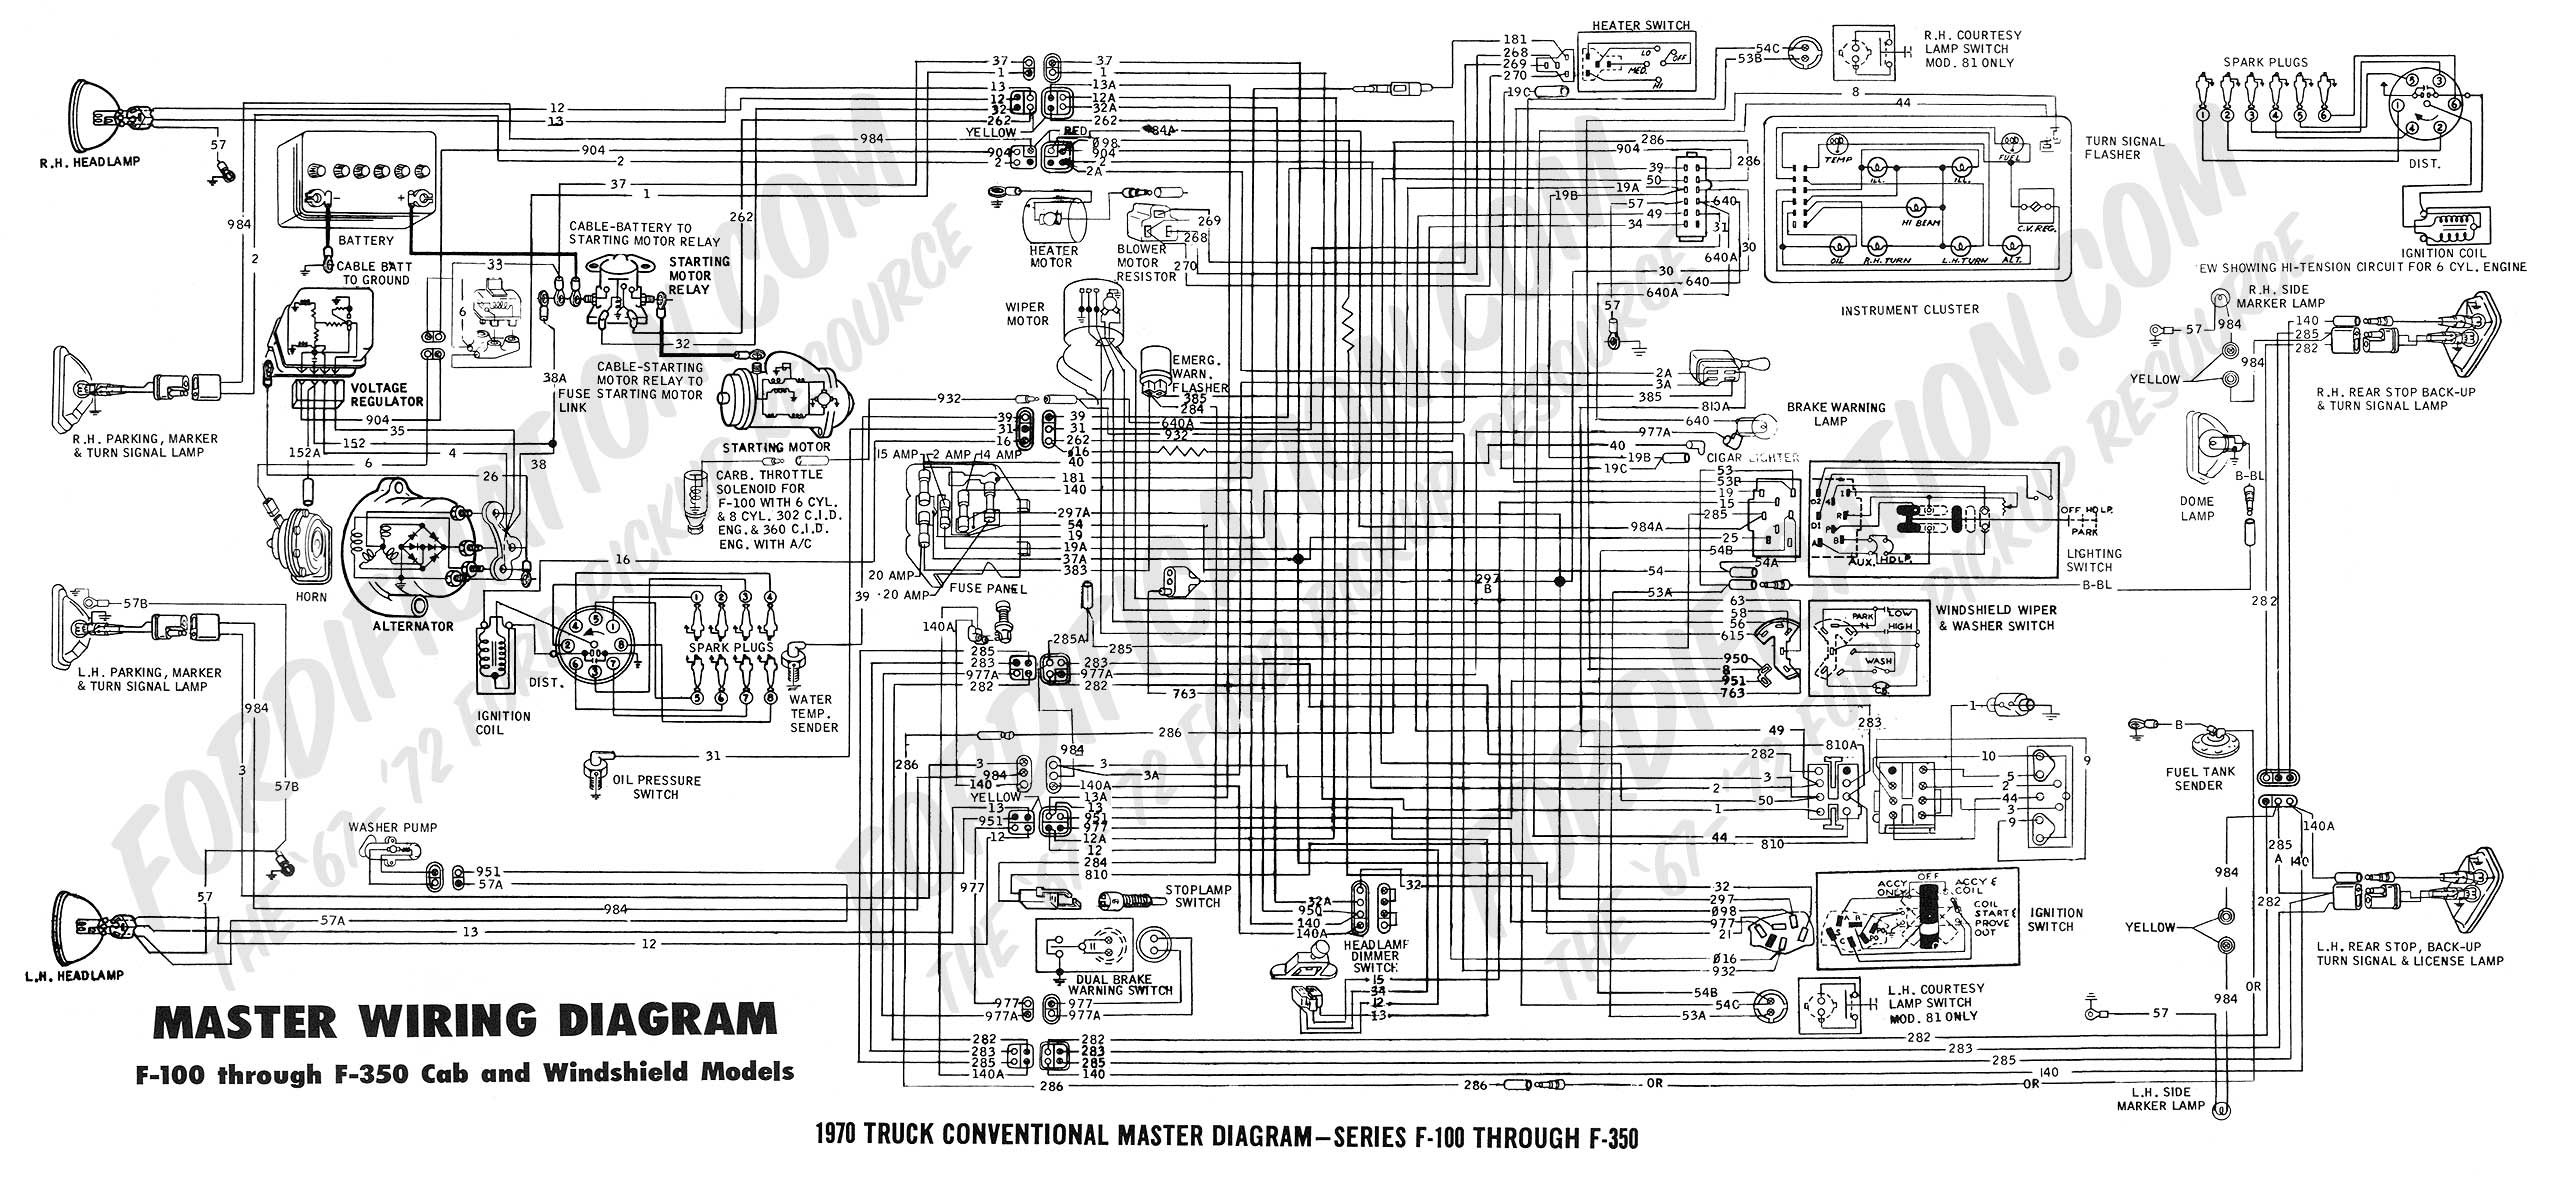 88 s10 steering column wiring diagram wiring library 1973 Ford F100 Wiring Diagram 1979 ford wiring harness wiring diagram schemes 1978 ford pinto steering column wiring 1967 ford truck